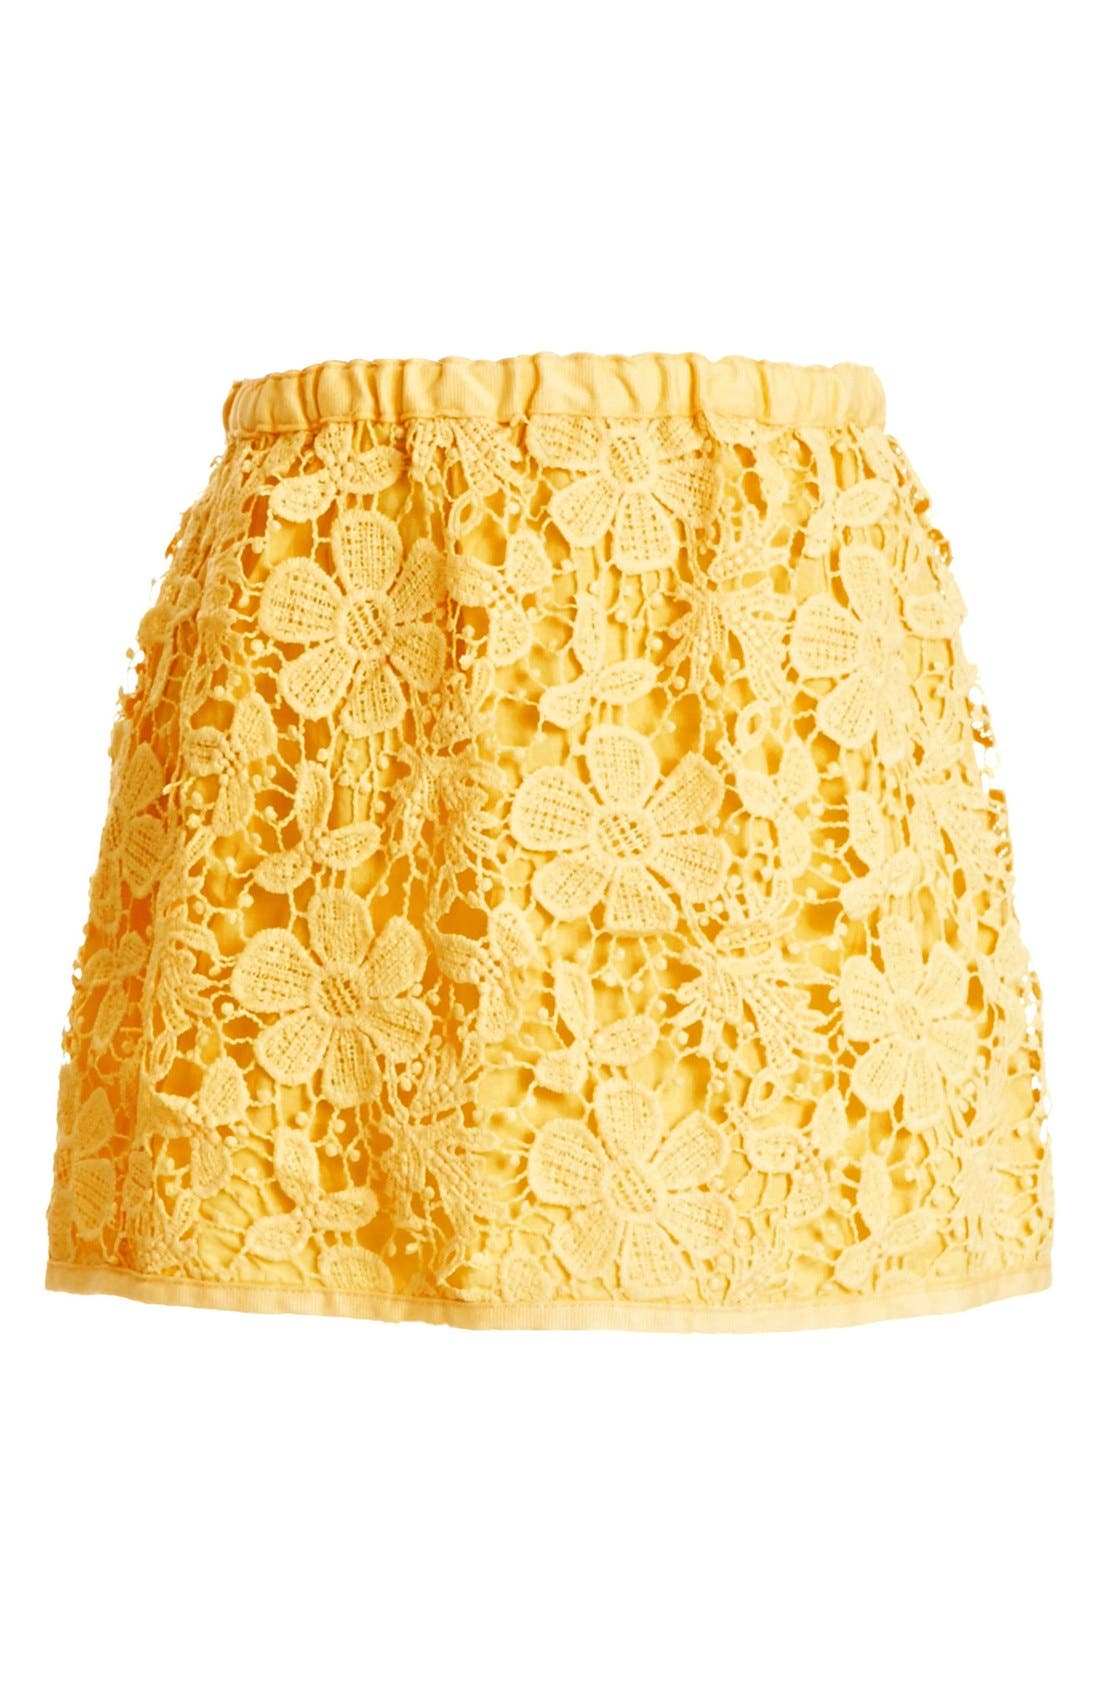 Alternate Image 1 Selected - Peek 'Ashley' Skirt (Toddler Girls, Little Girls & Big Girls)